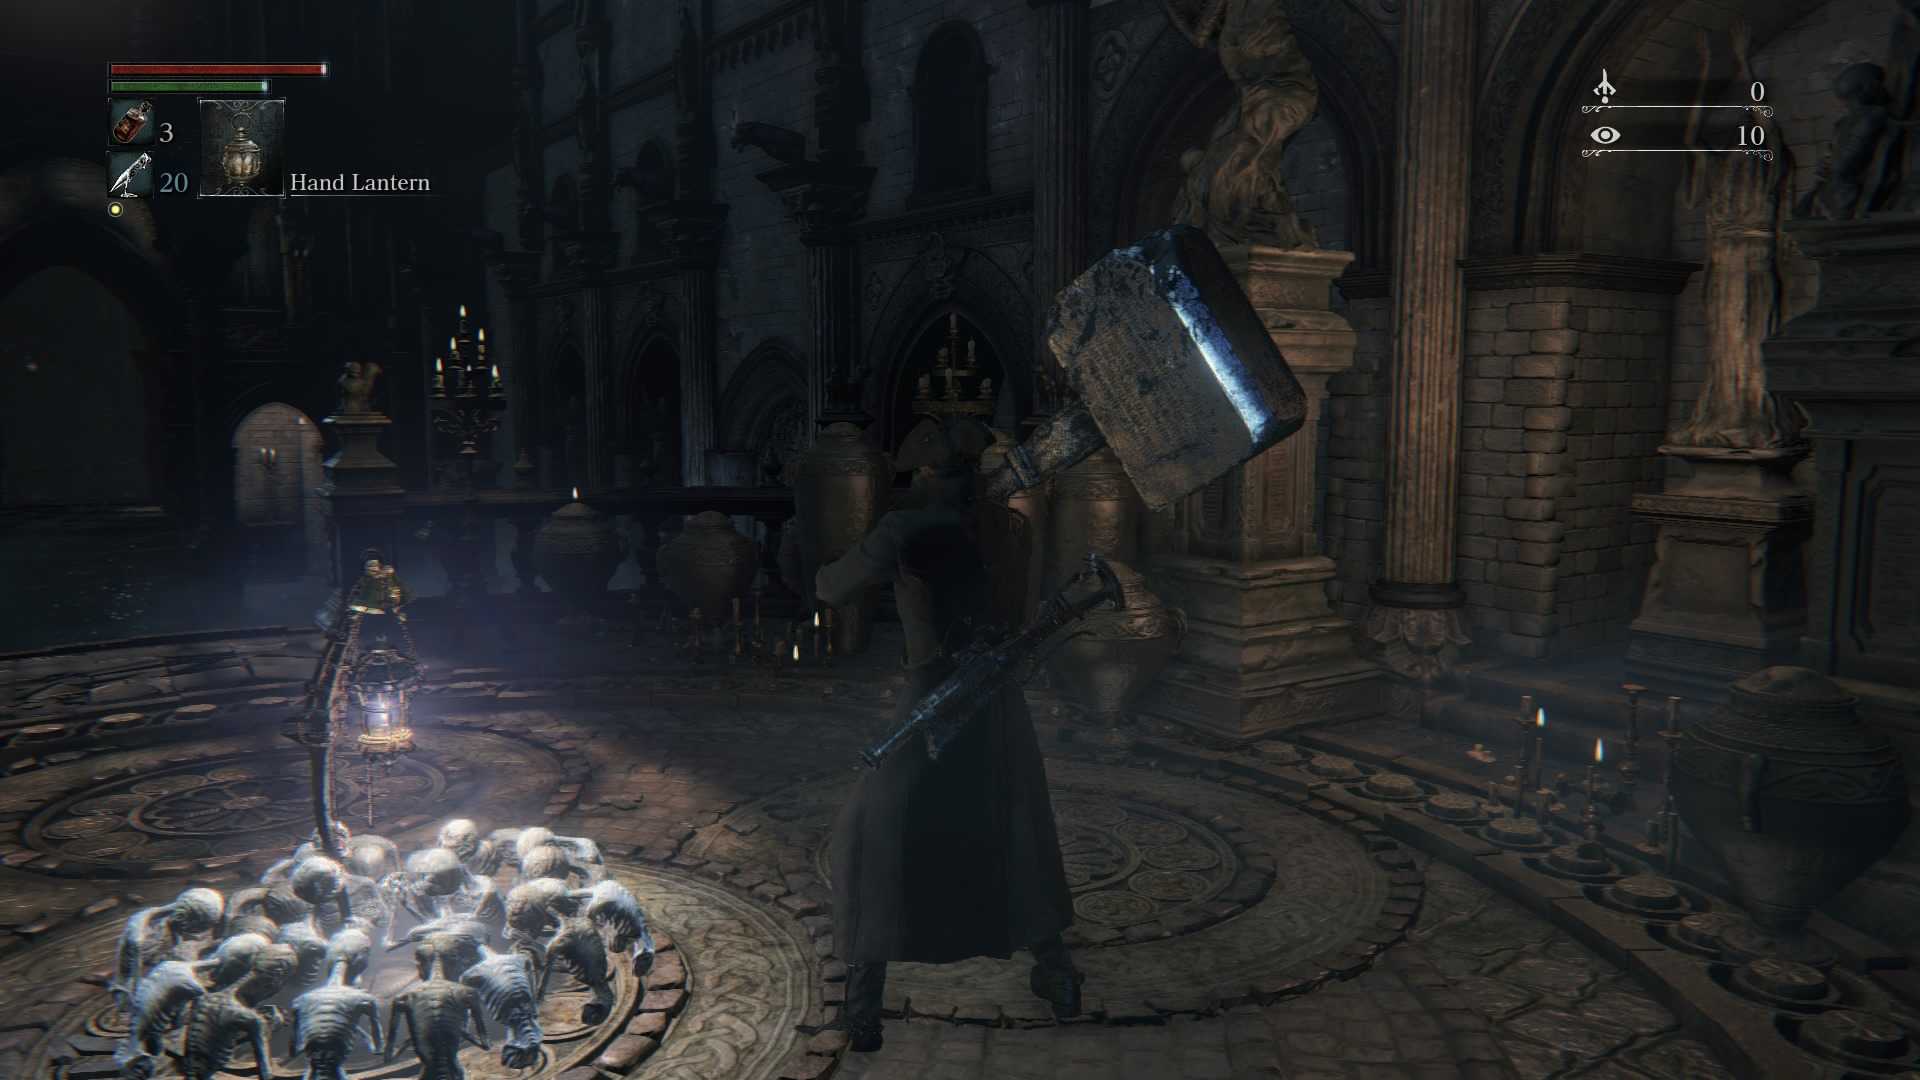 Bloodborne matchmaking takes forever